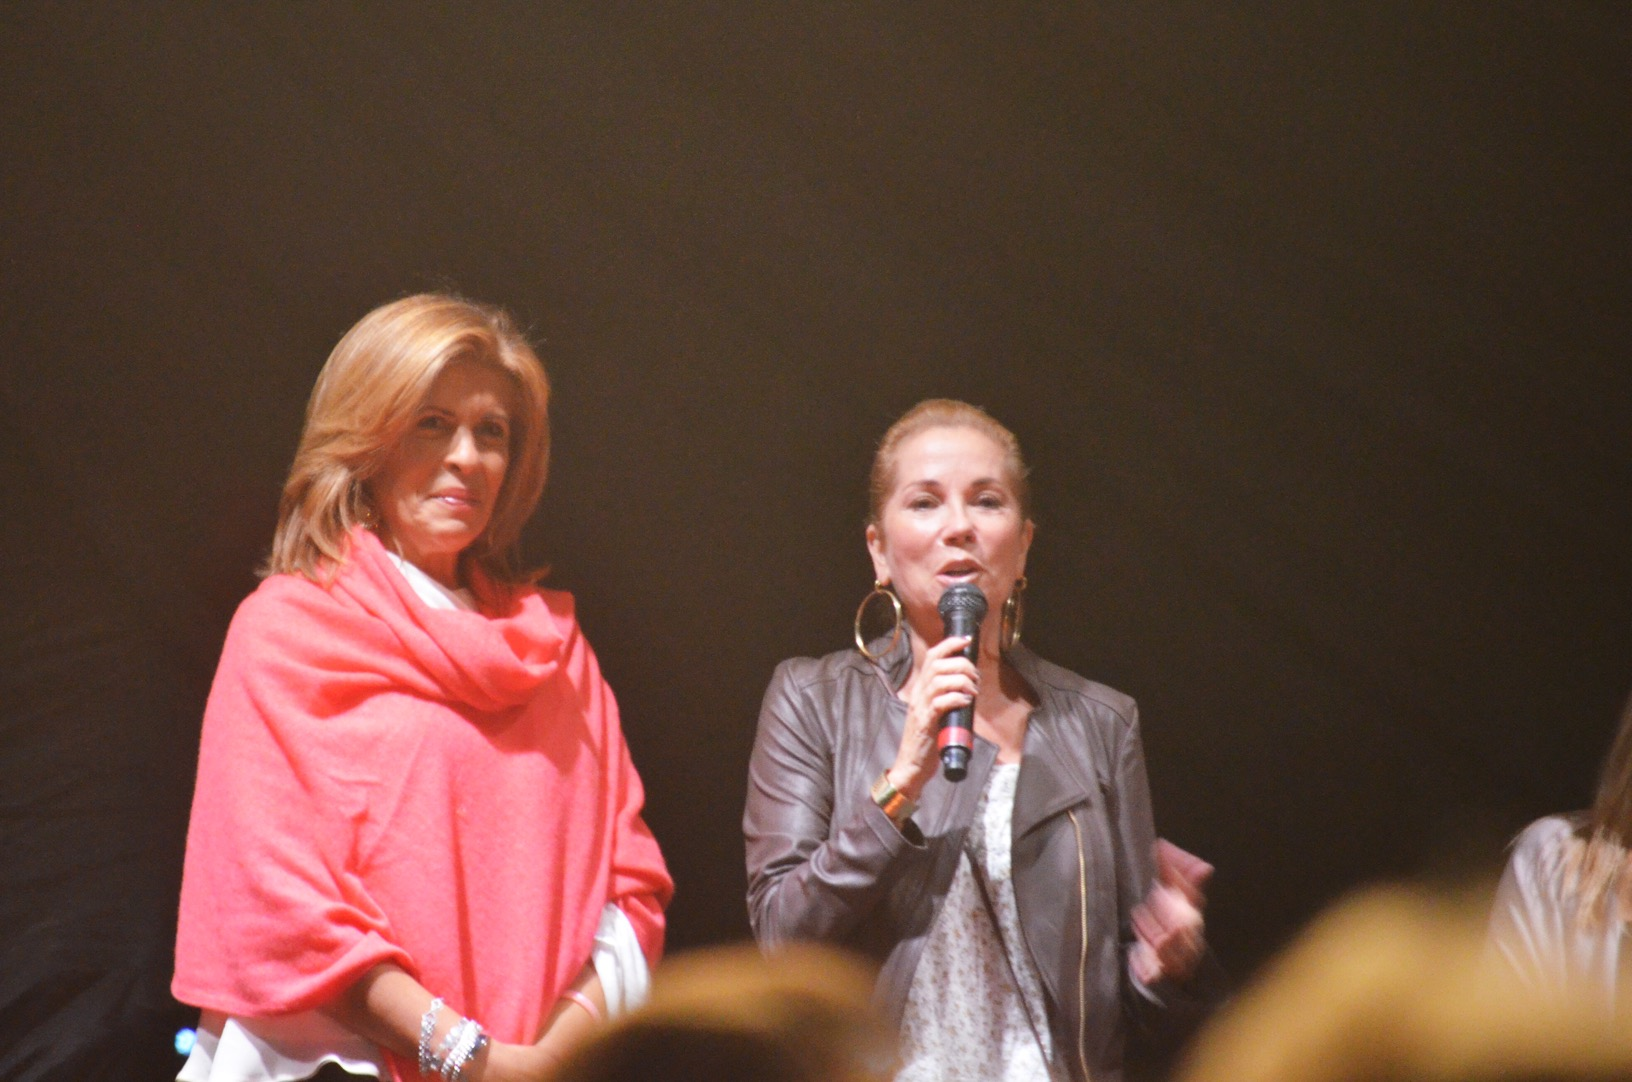 Kathie Lee Gifford and Hoda Kotb introducing Little Big Town to the crowd